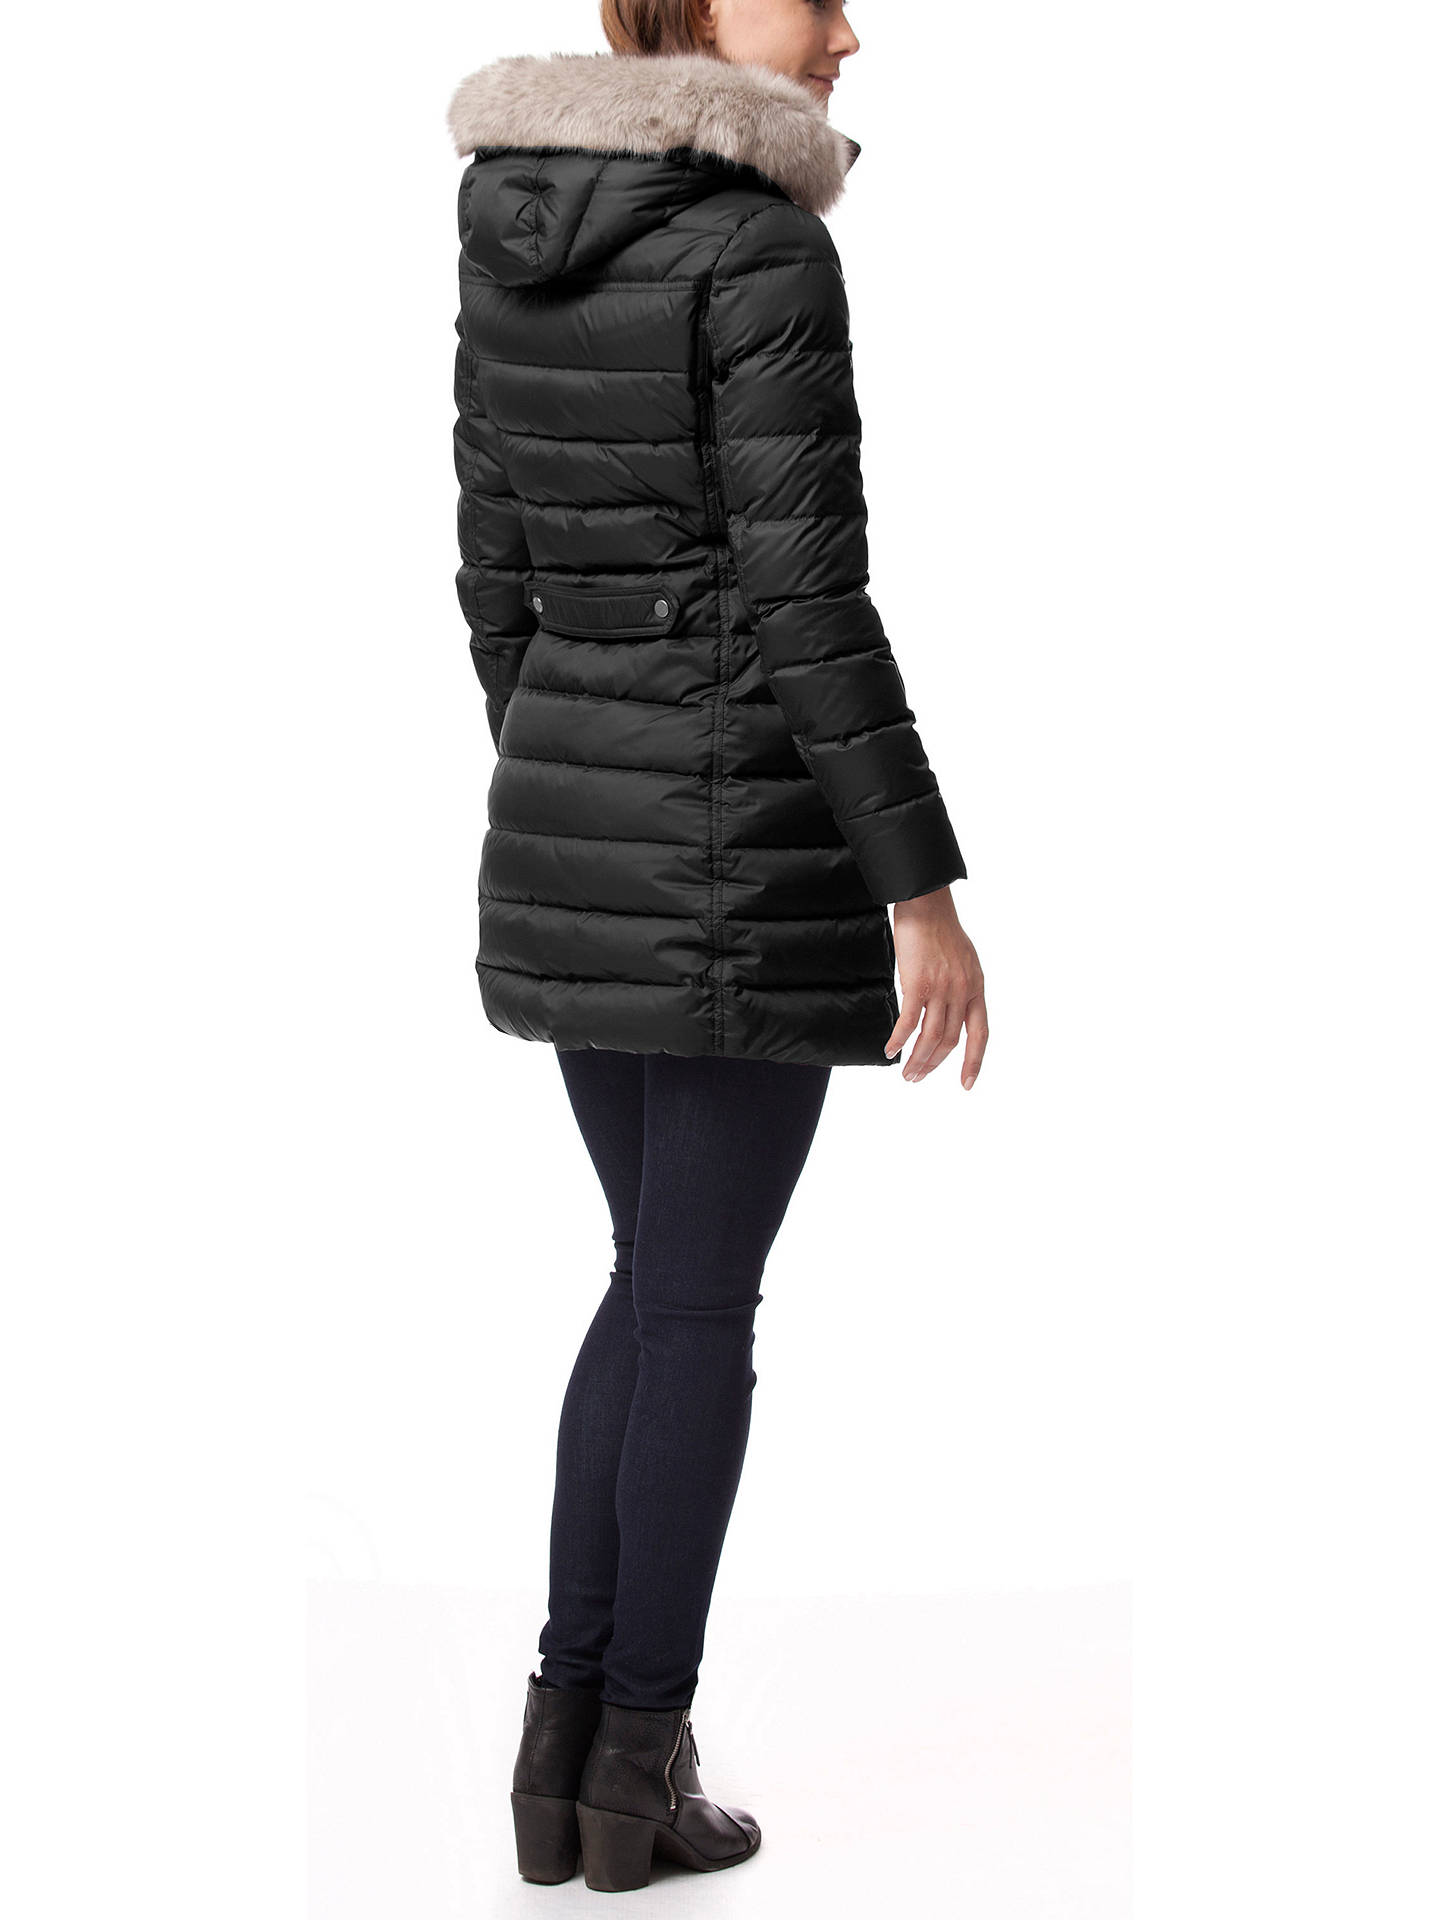 736d7d0a ... Buy Tommy Hilfiger Tyra Down Coat, Masters Black, S Online at  johnlewis.com ...